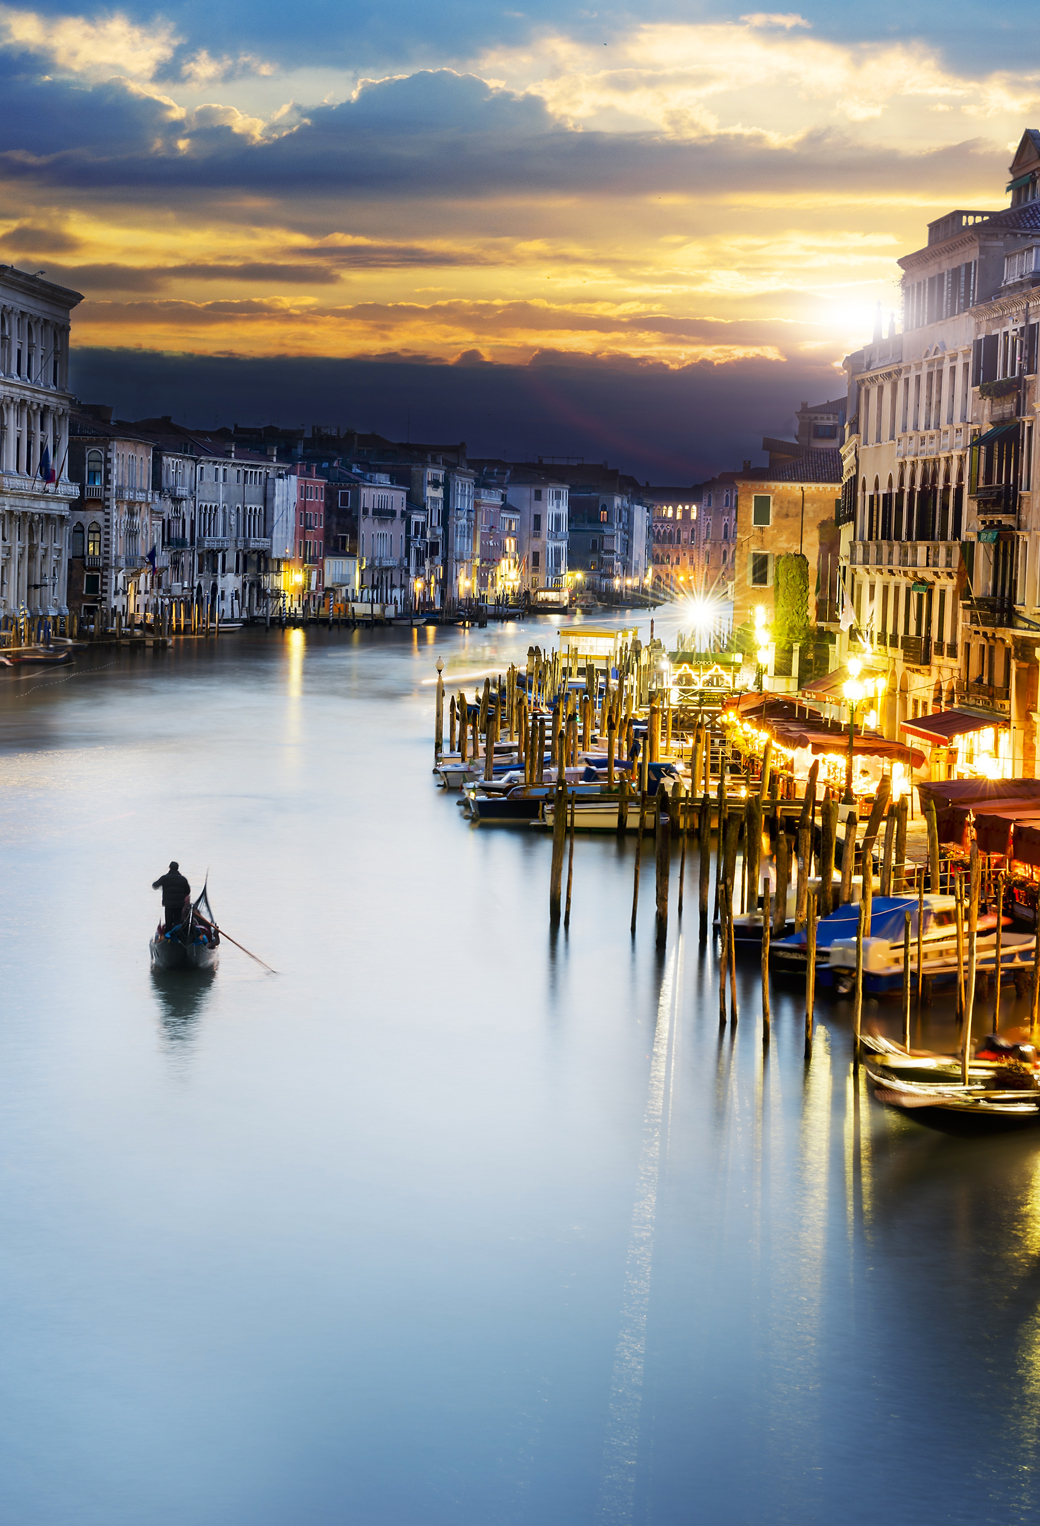 City Venice Italy Sunlight Wallpaper For Iphone X 8 7 6